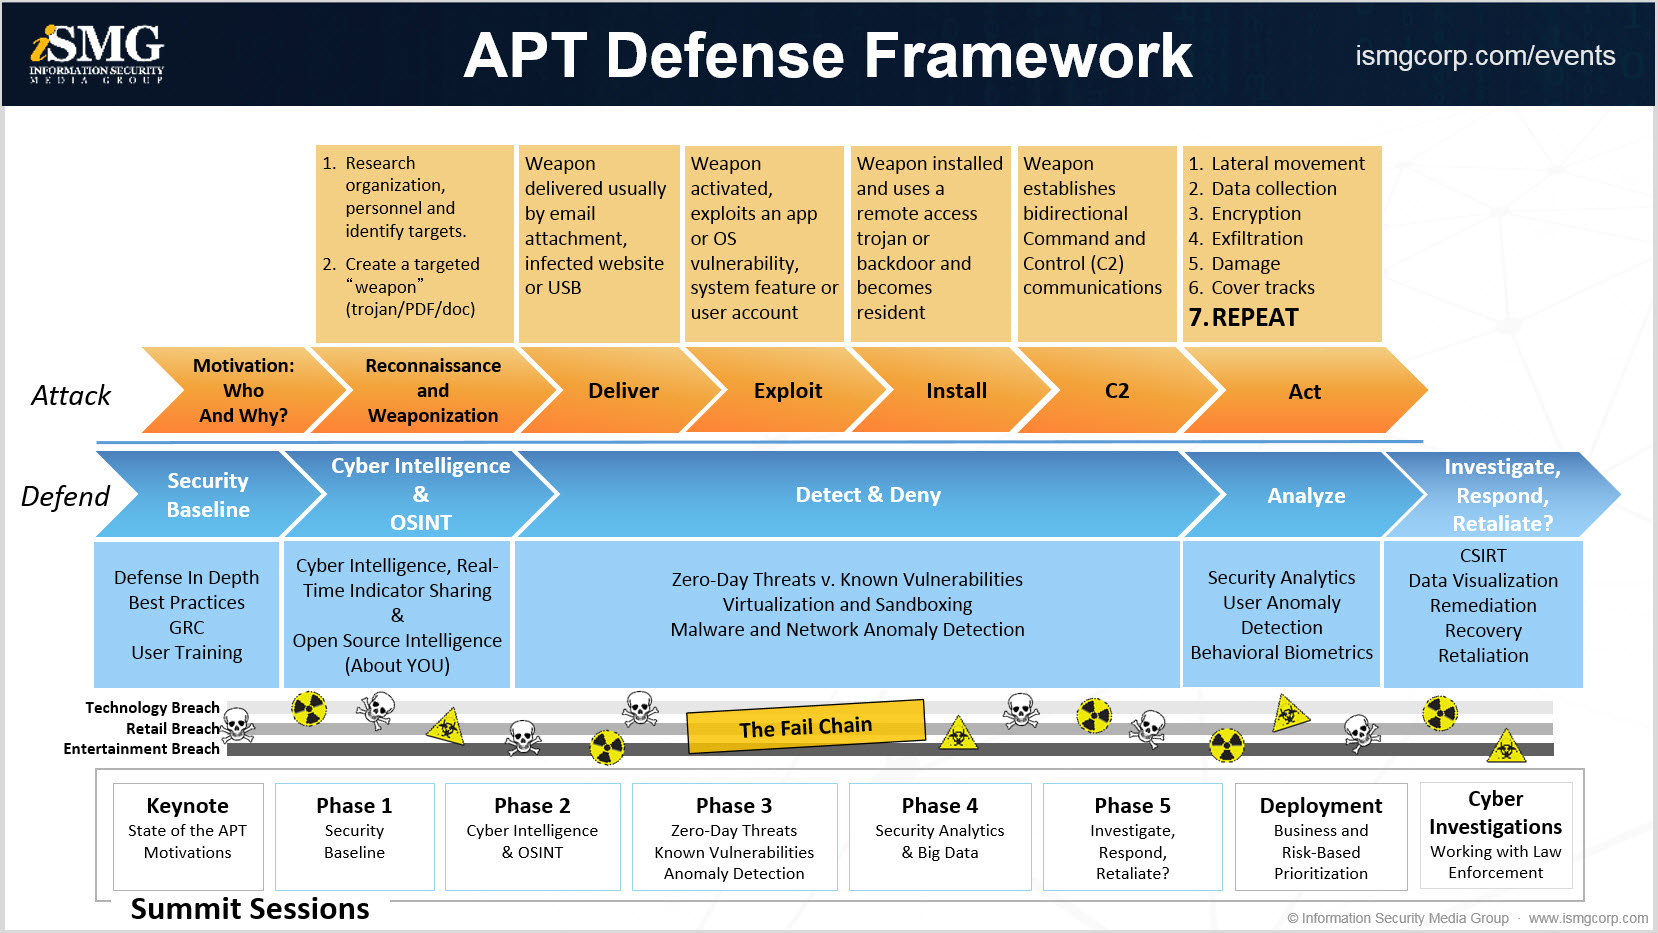 The ISMG APT Defense Framework